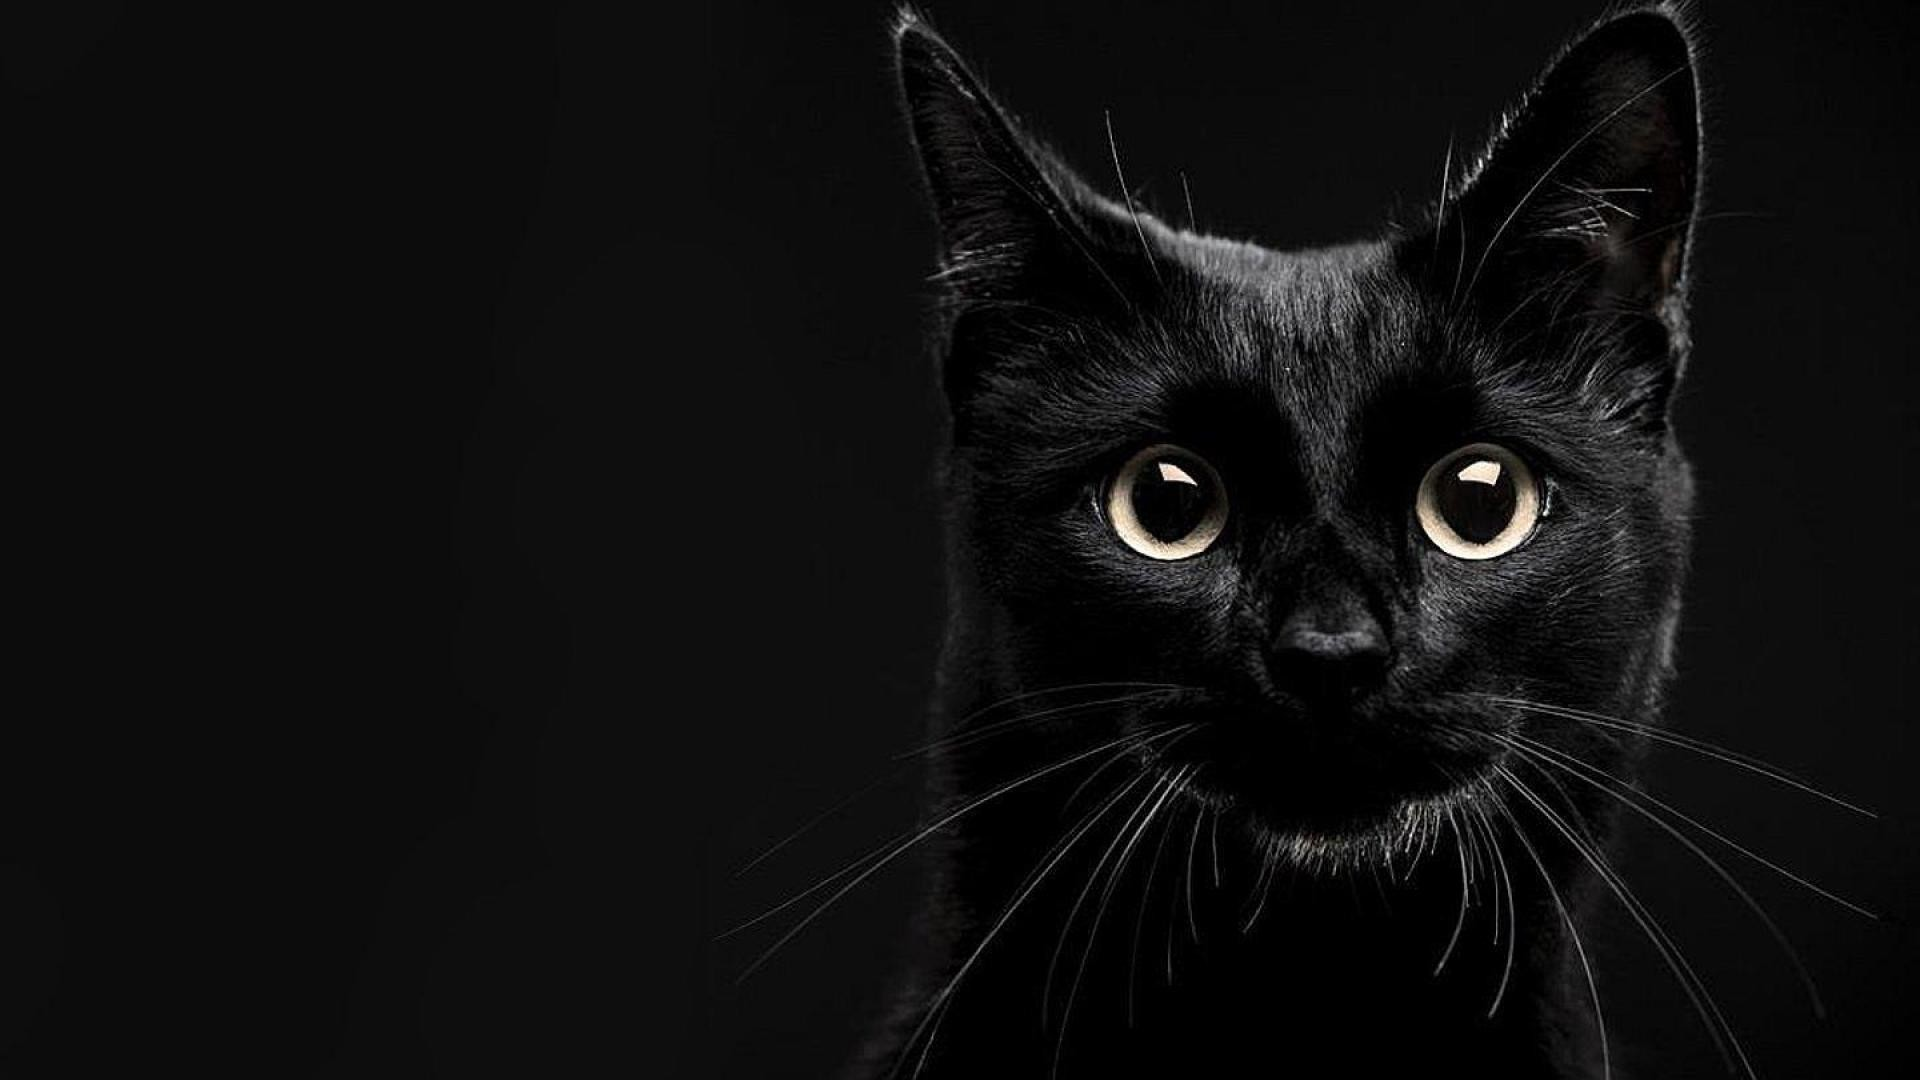 Black Cat Wallpapers (71+ images)